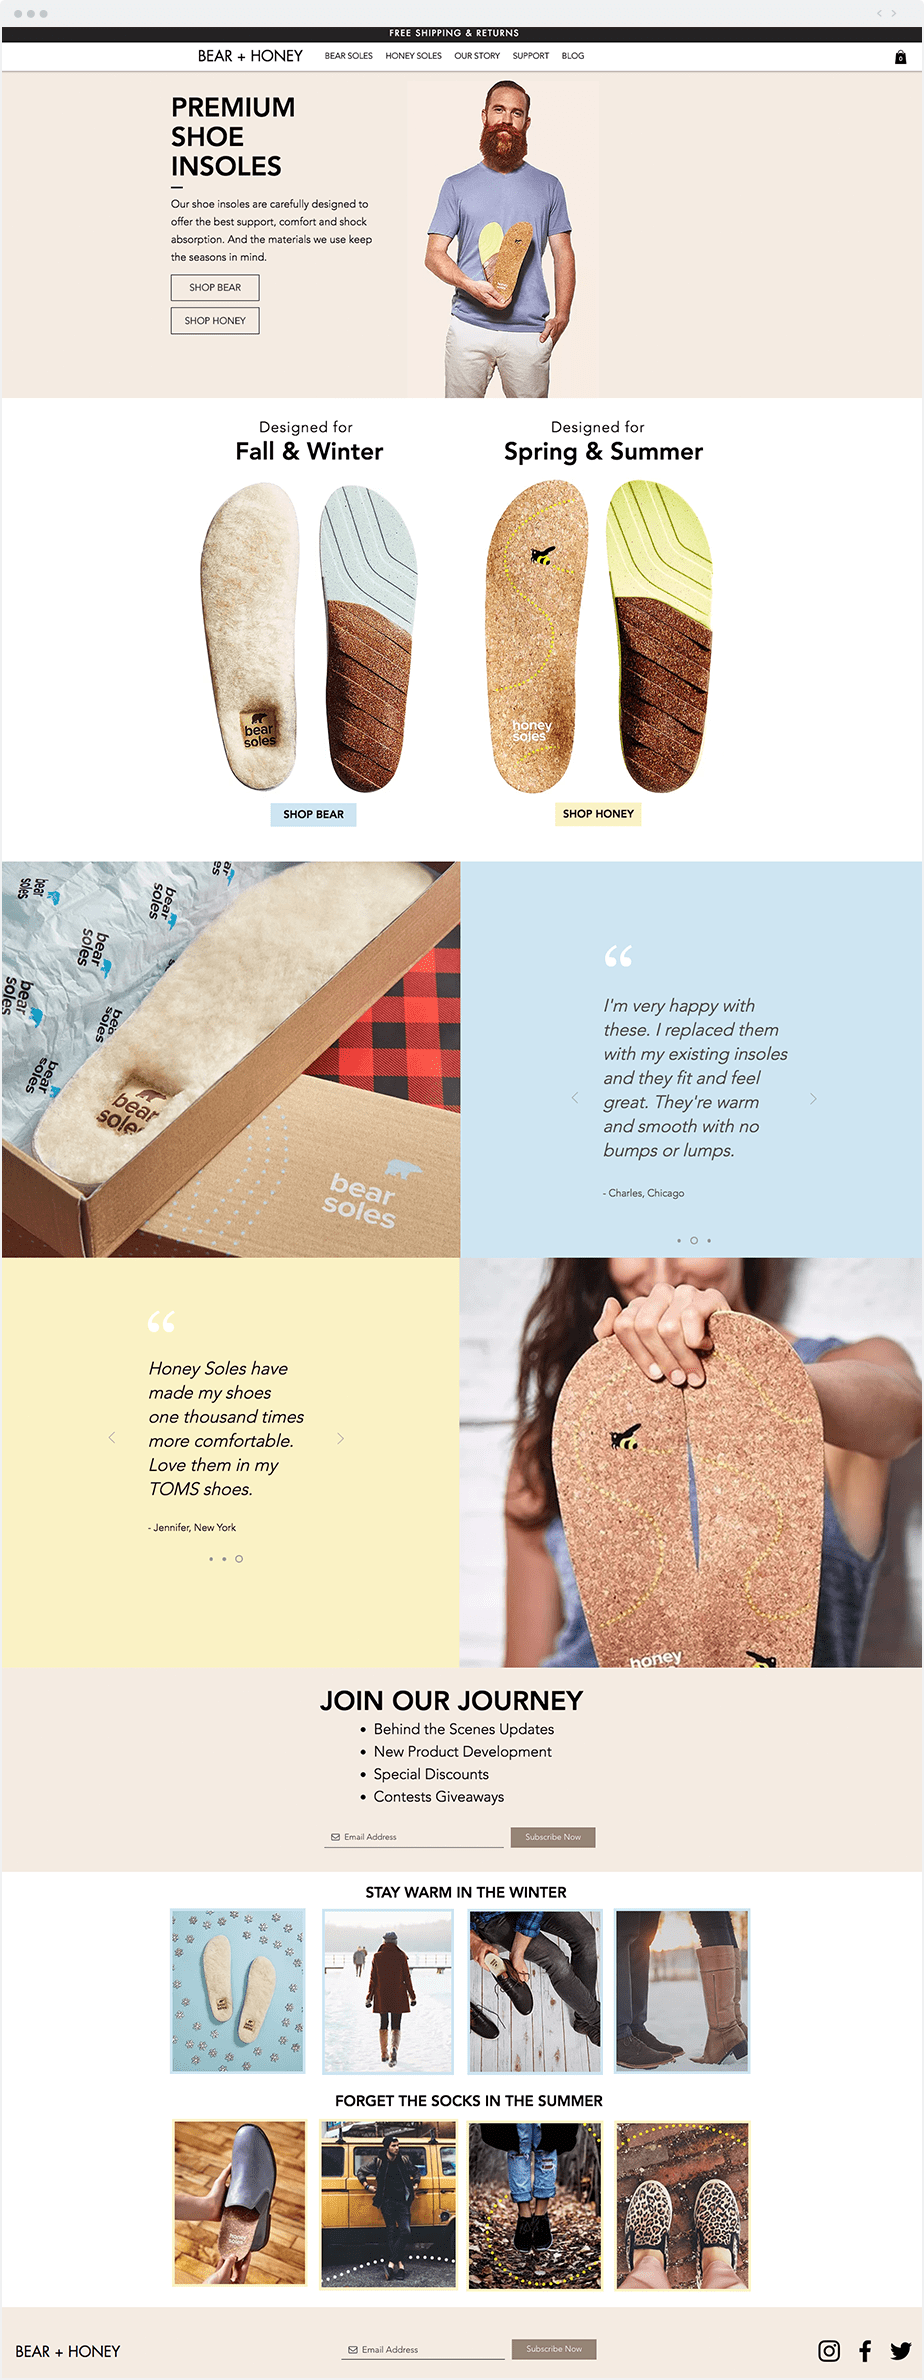 Wix unique business ideas - Bear and Honey